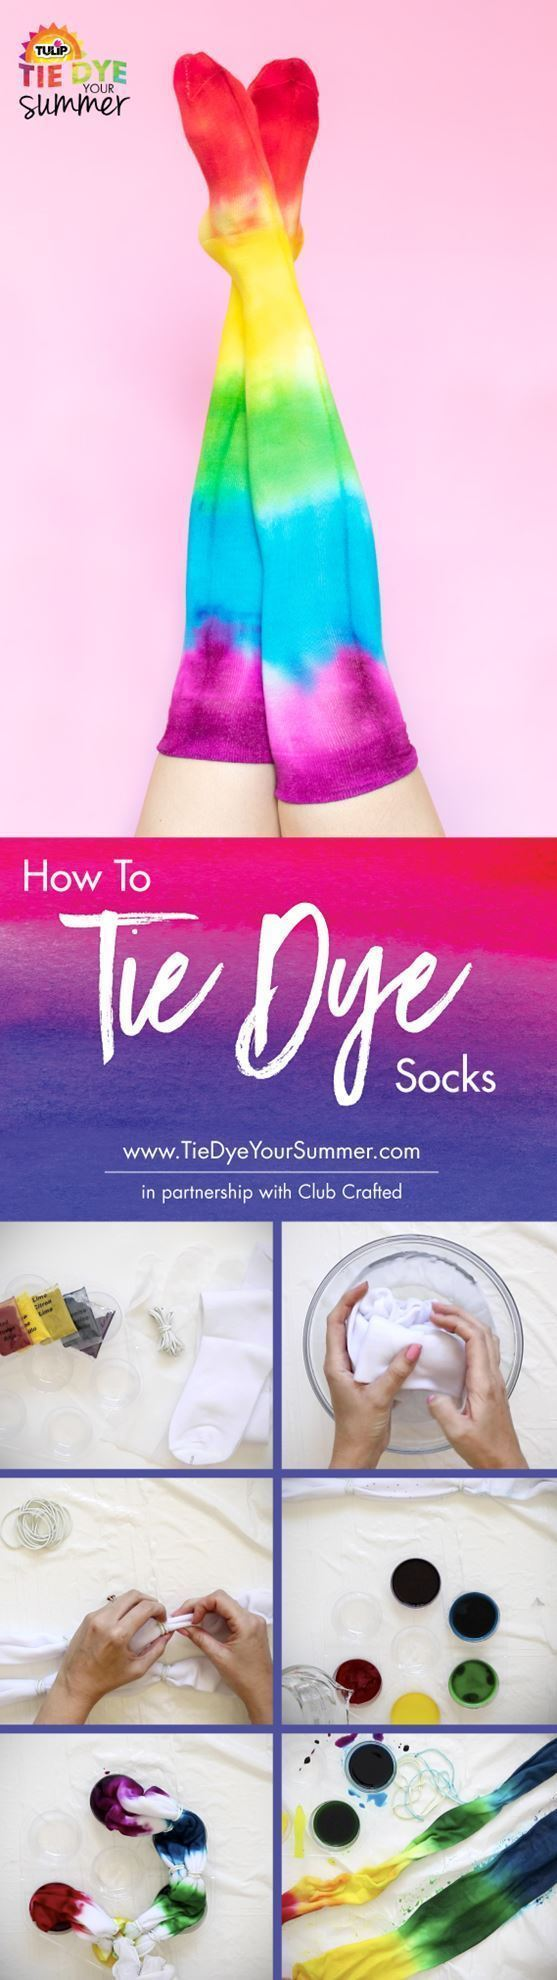 How To Tie Dye Socks The Easy Way